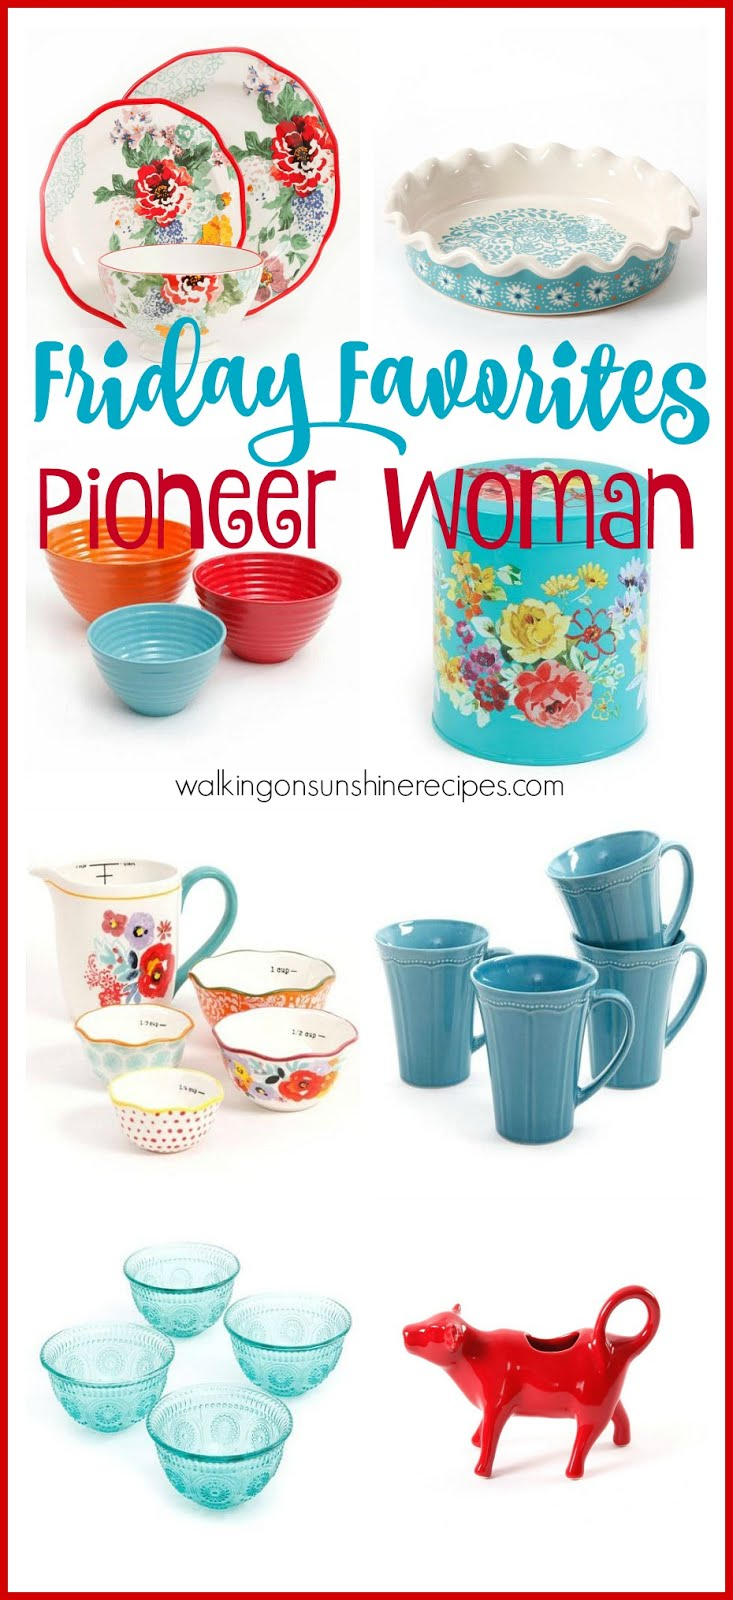 Pioneer Woman Wish List